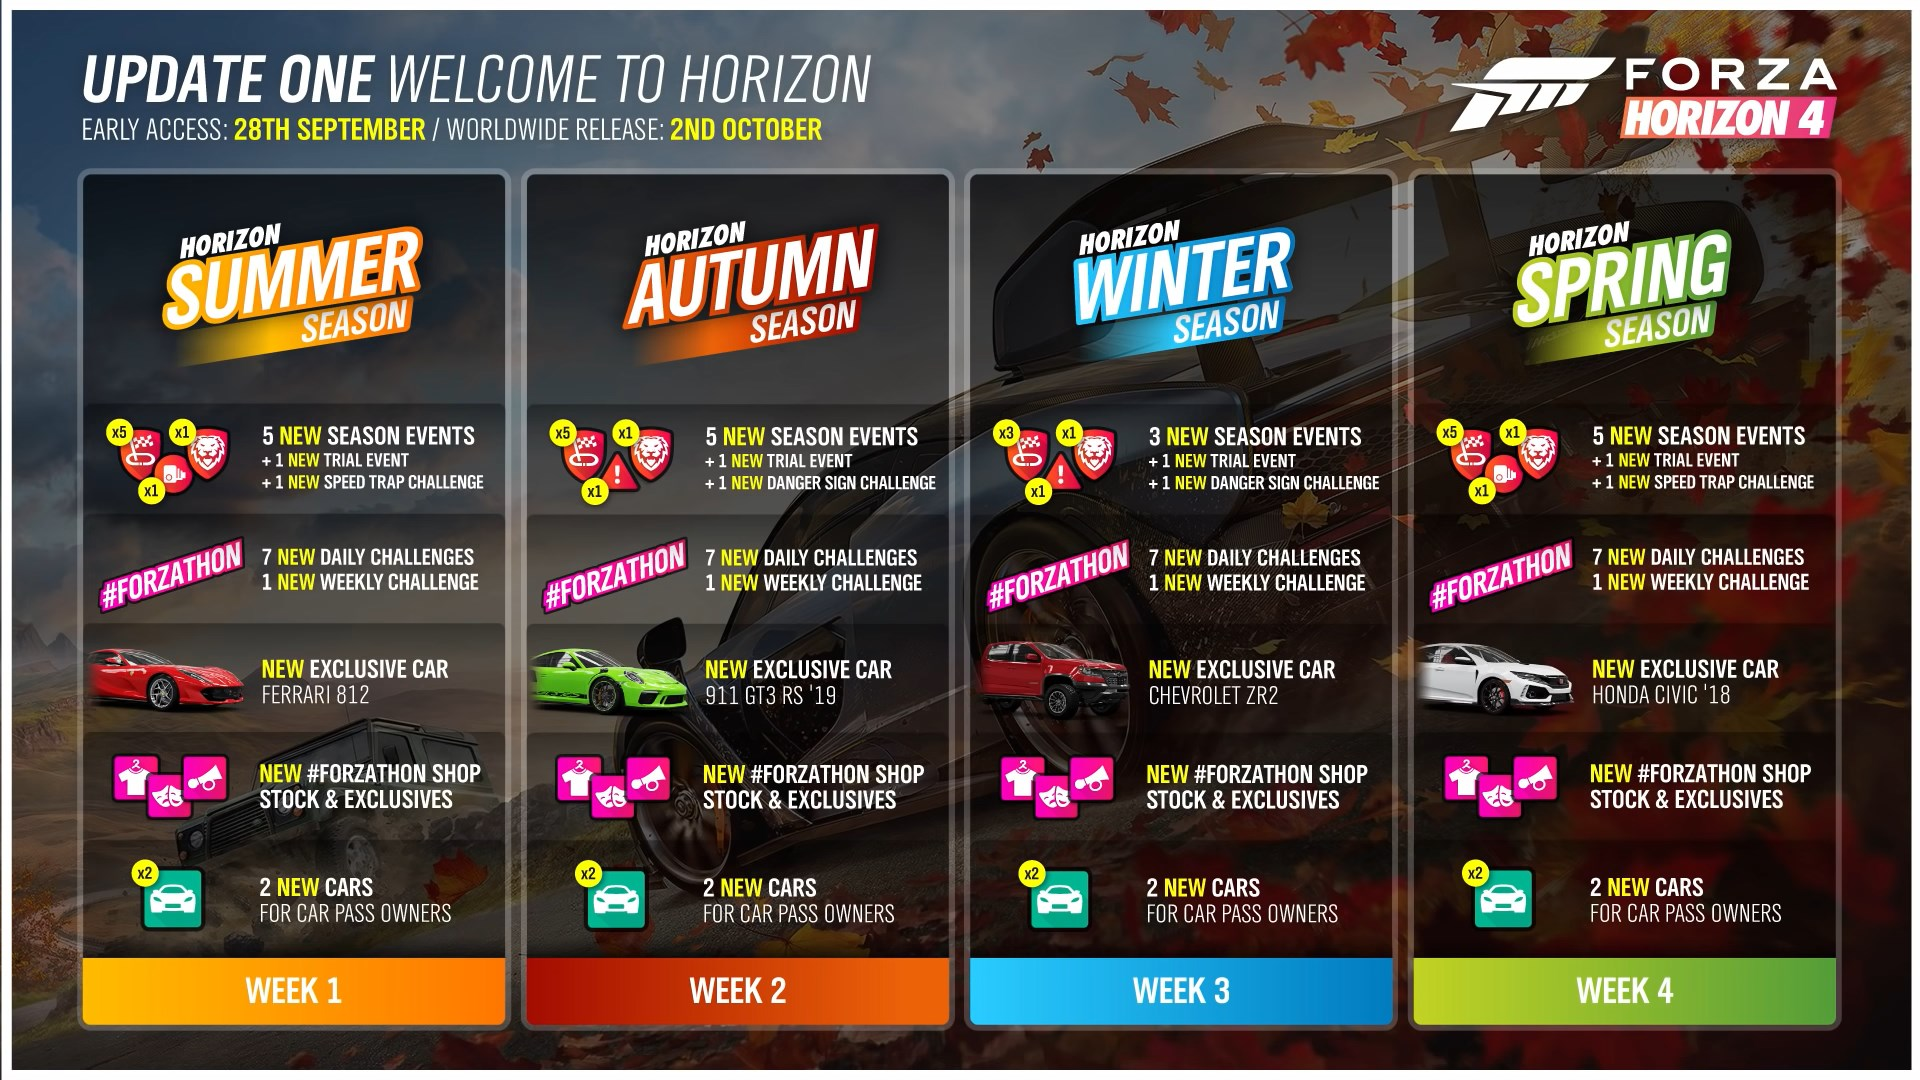 Forza Horizon 4/Update One